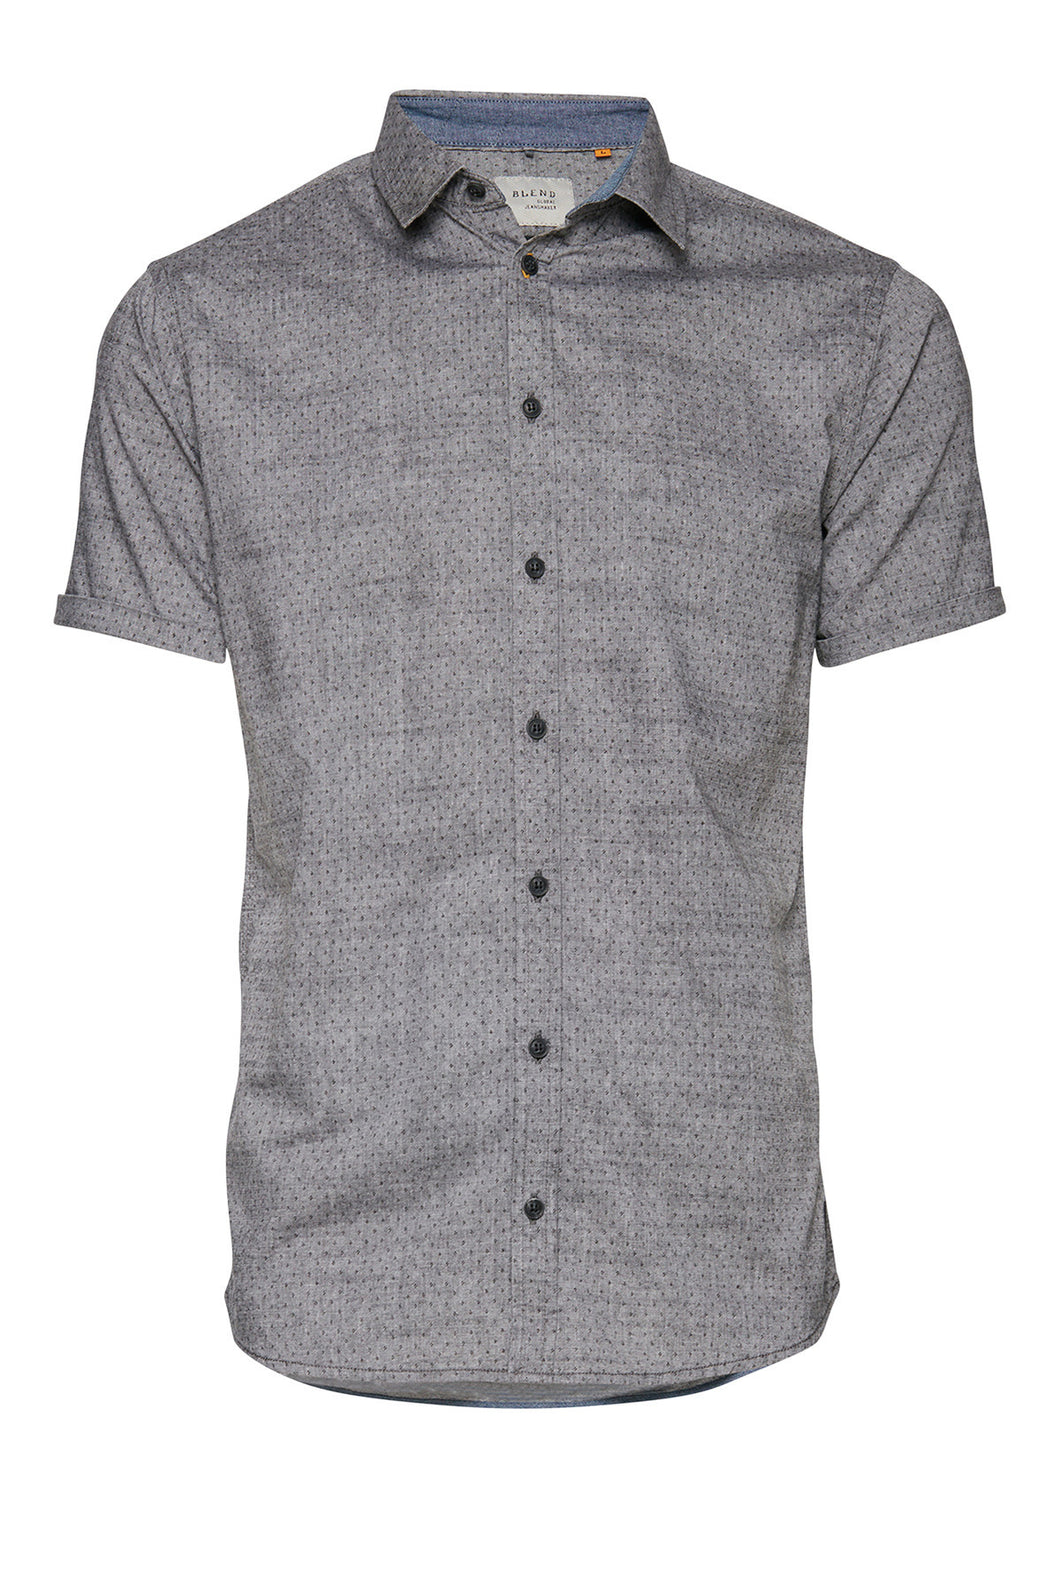 BLEND - Shirt Sleeved DashGrey